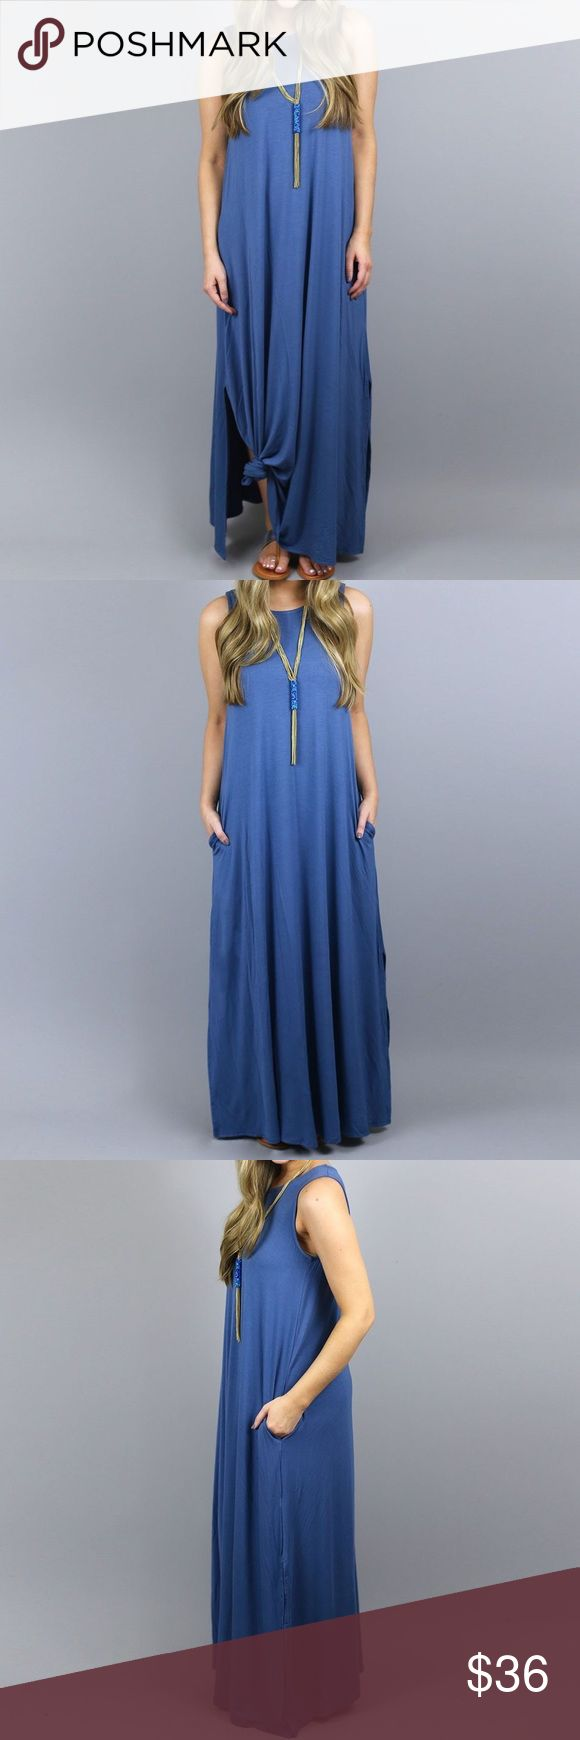 "Azure Blue Pocketed Tank Maxi Dress Casual, a-line, sleeveless tank style, o-neck, floor length, right side slit, two pockets, cotton / spandex maxi dress.   Size 5XL/20  Bust: 47.25"" Length: 55"" Dresses Maxi"